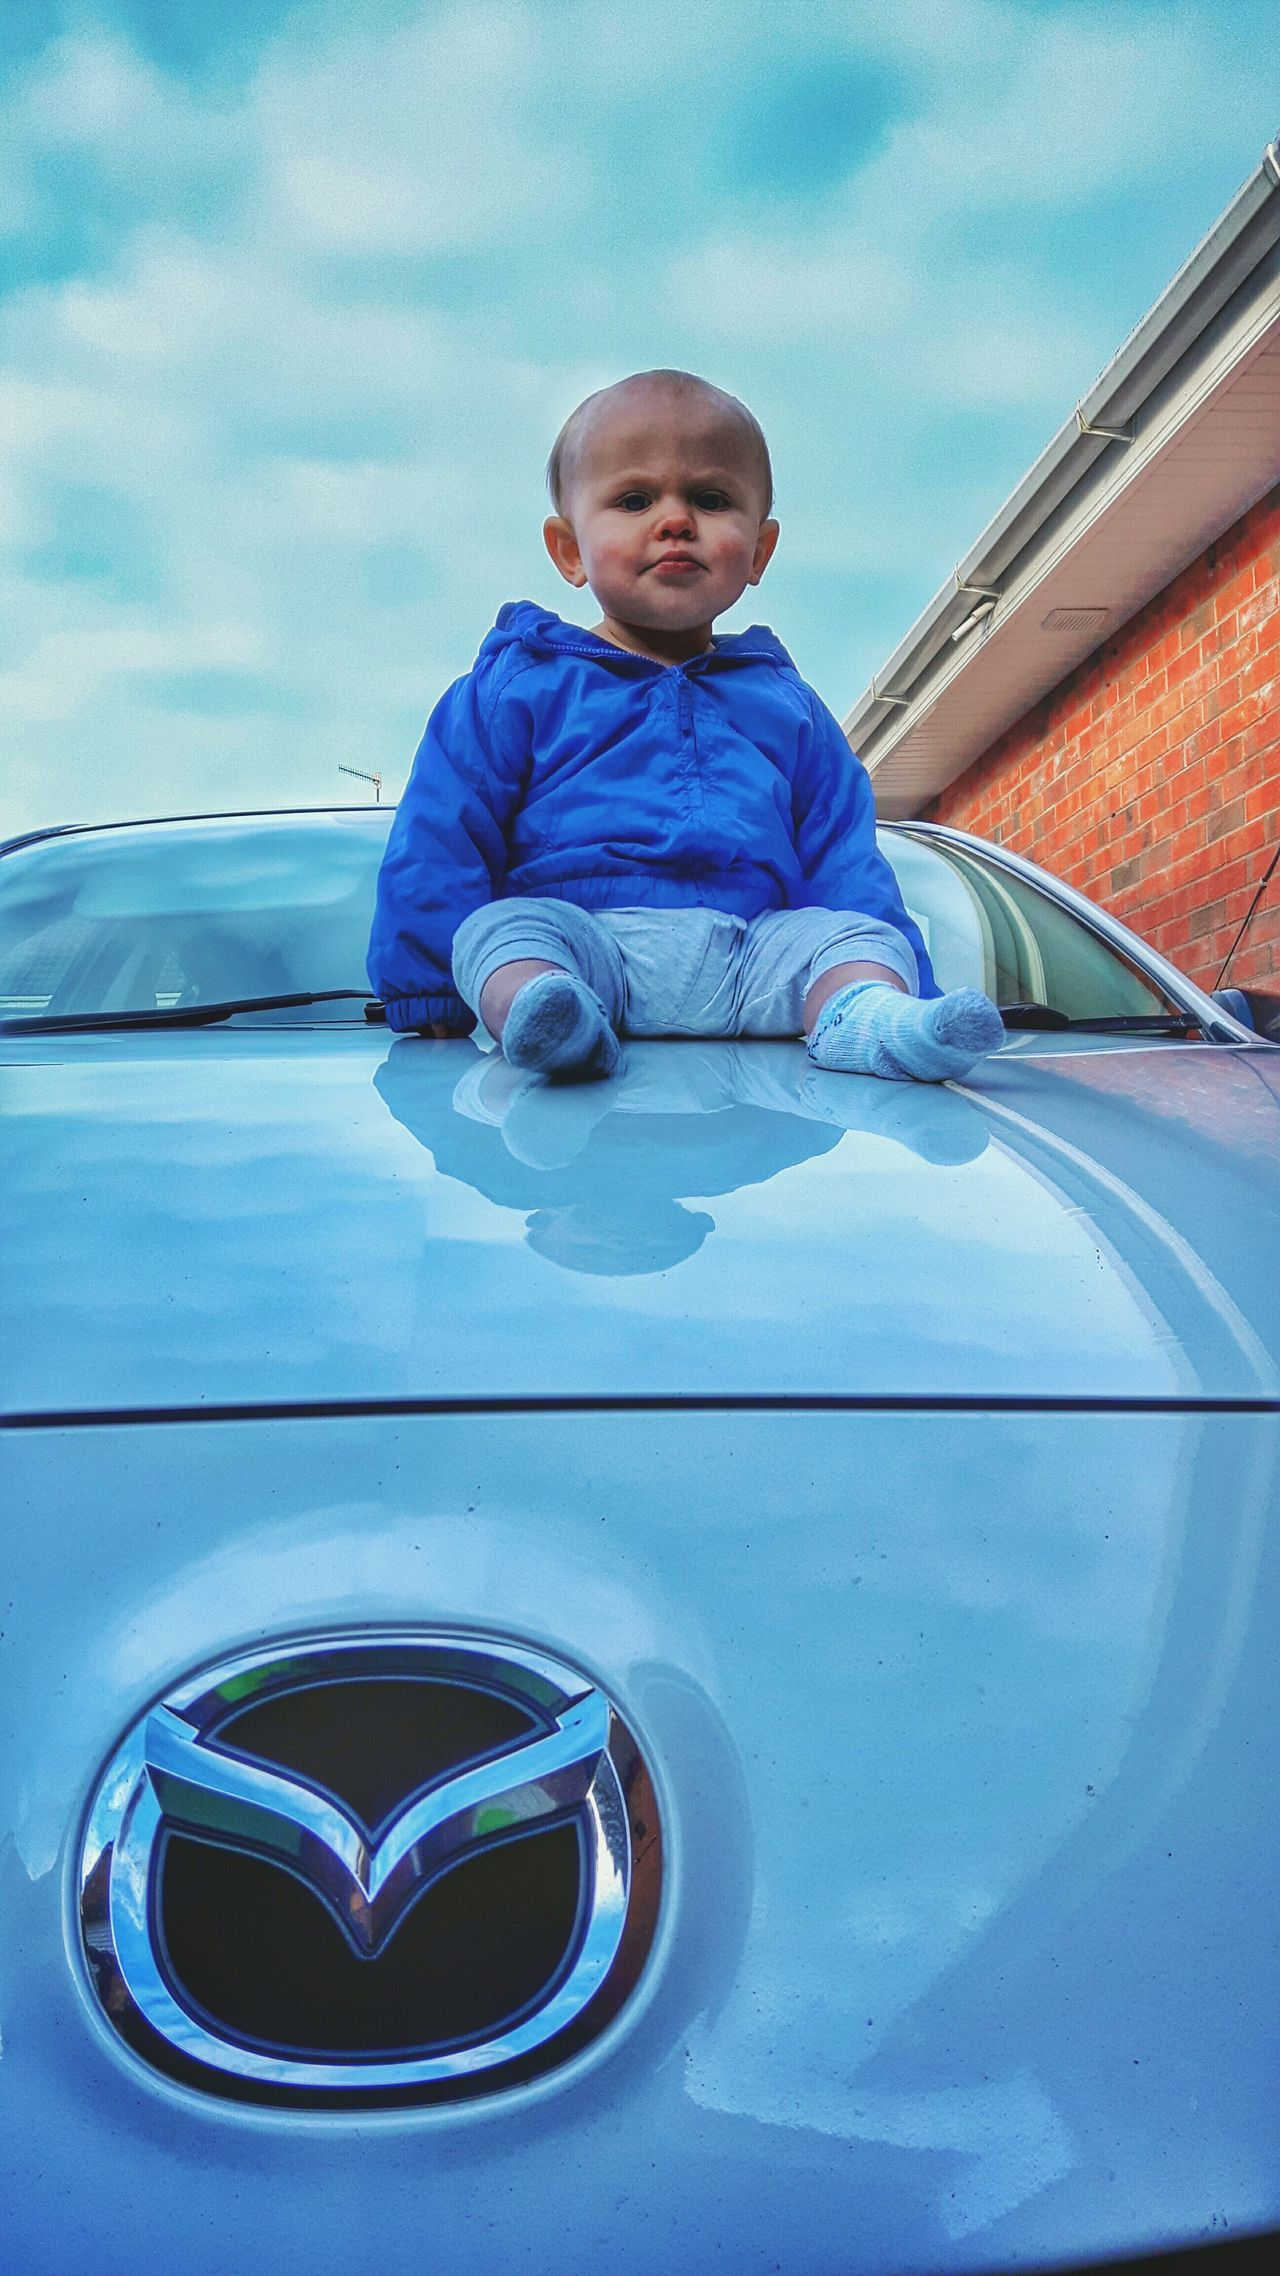 Baby Boy On Bonnet Zoom Zoom Babyboy Baby Mazda White Car White Mazda3 Baby Boy On Car Hood Baby On Car Bonnet Automobiles Zoom Zoom Babyboy EyeEm Baby Heres Looking At You Up Close Street Photography Mein Automoment